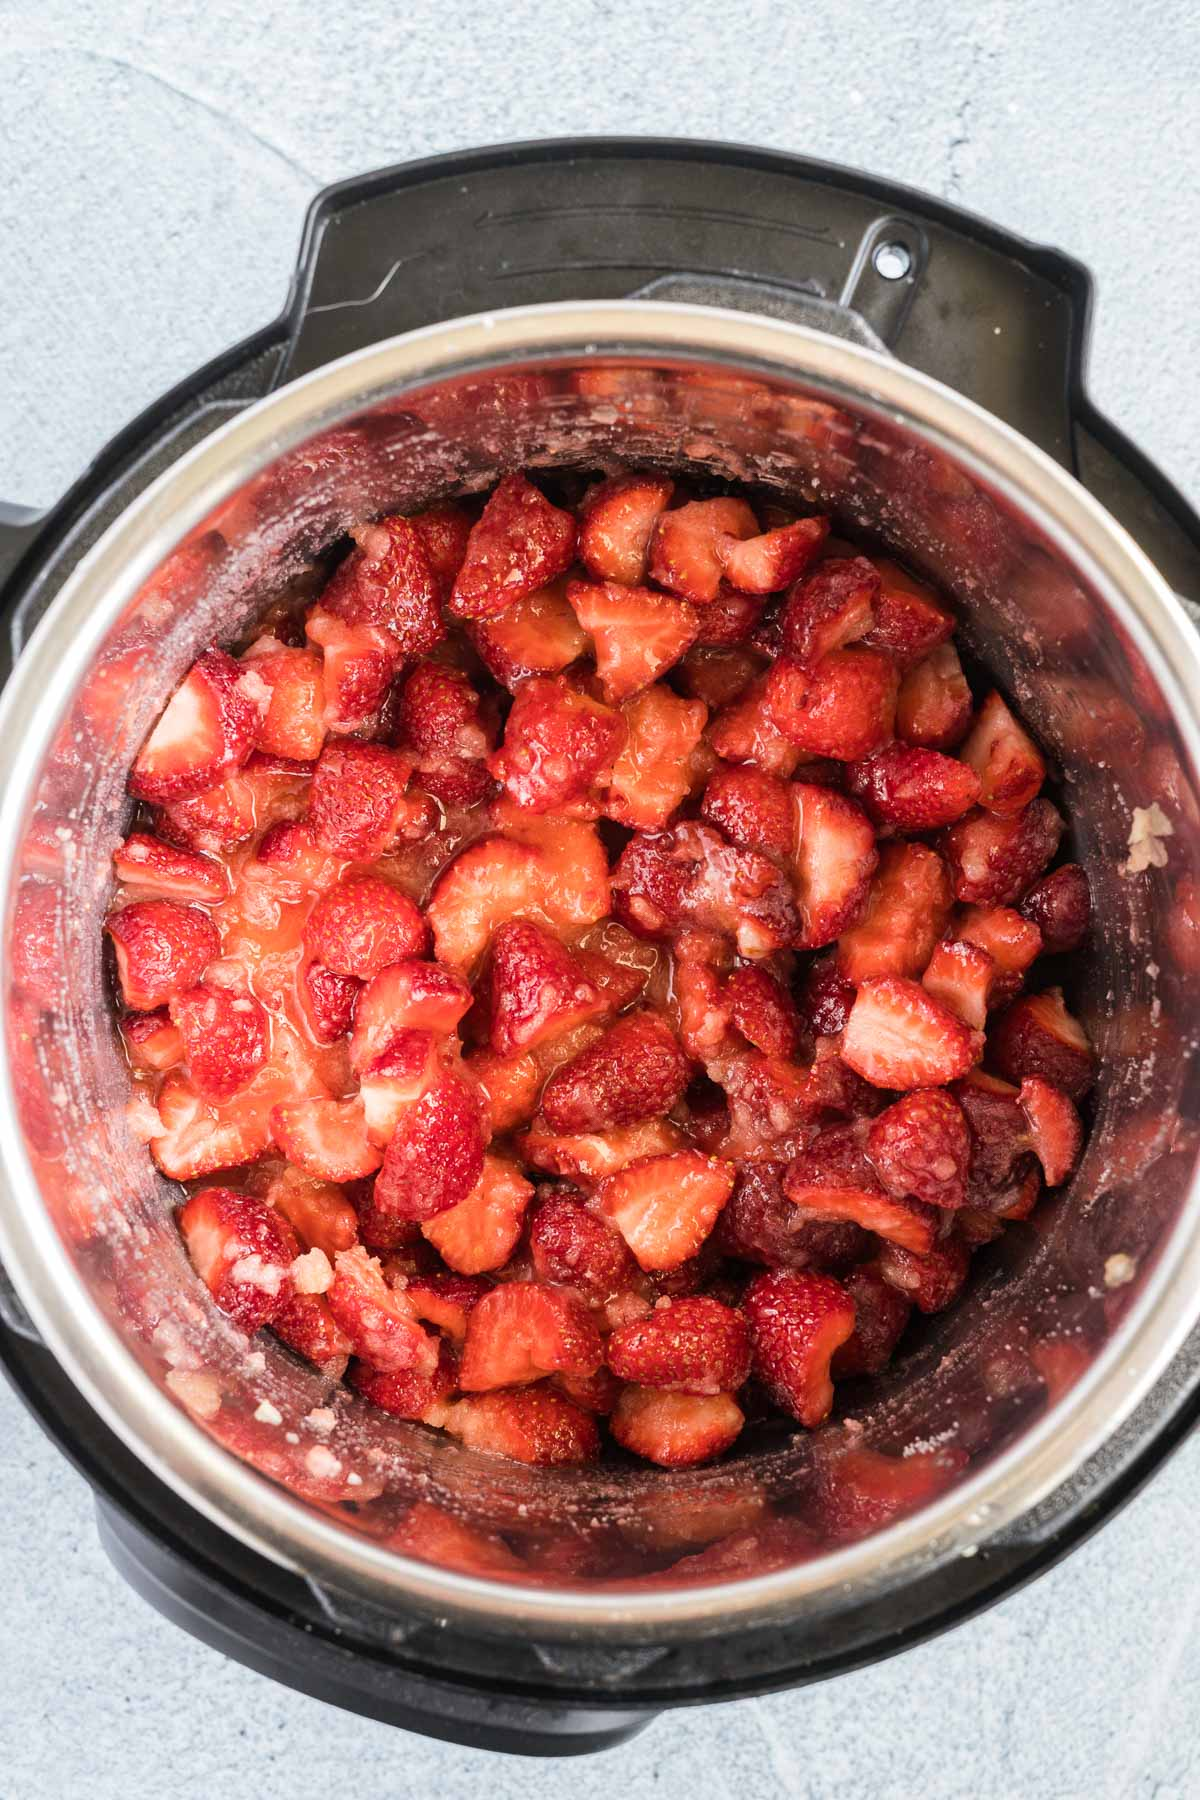 Chopped strawberries mixed with sugar in an instant pot.